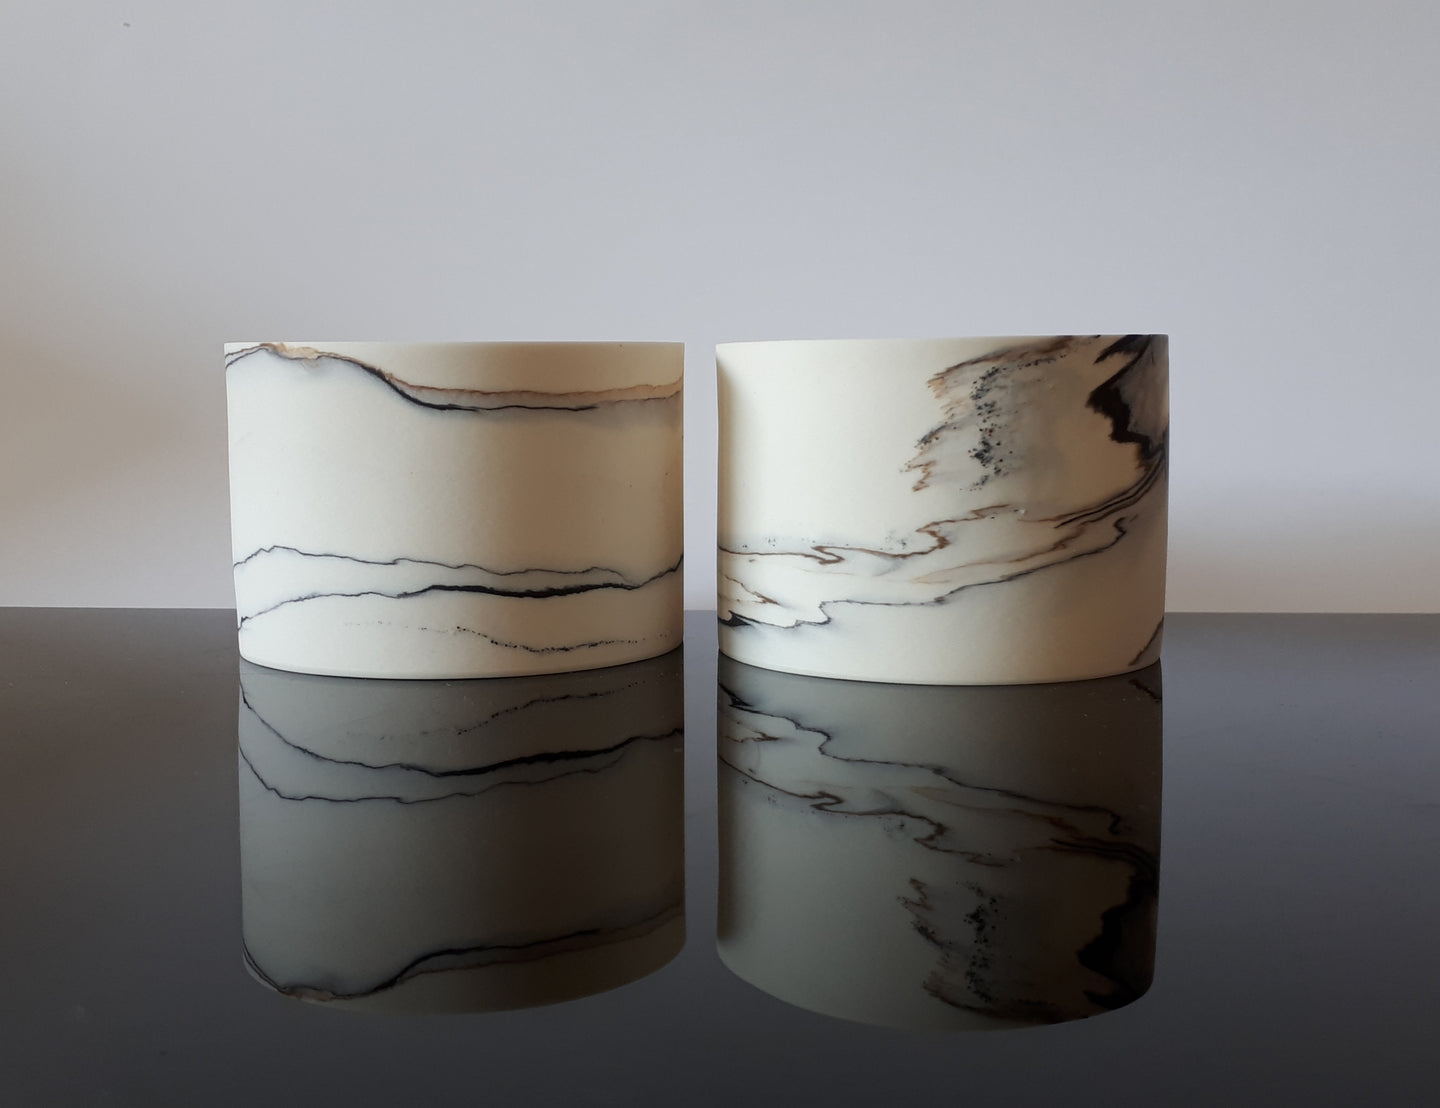 Pair of small vessels